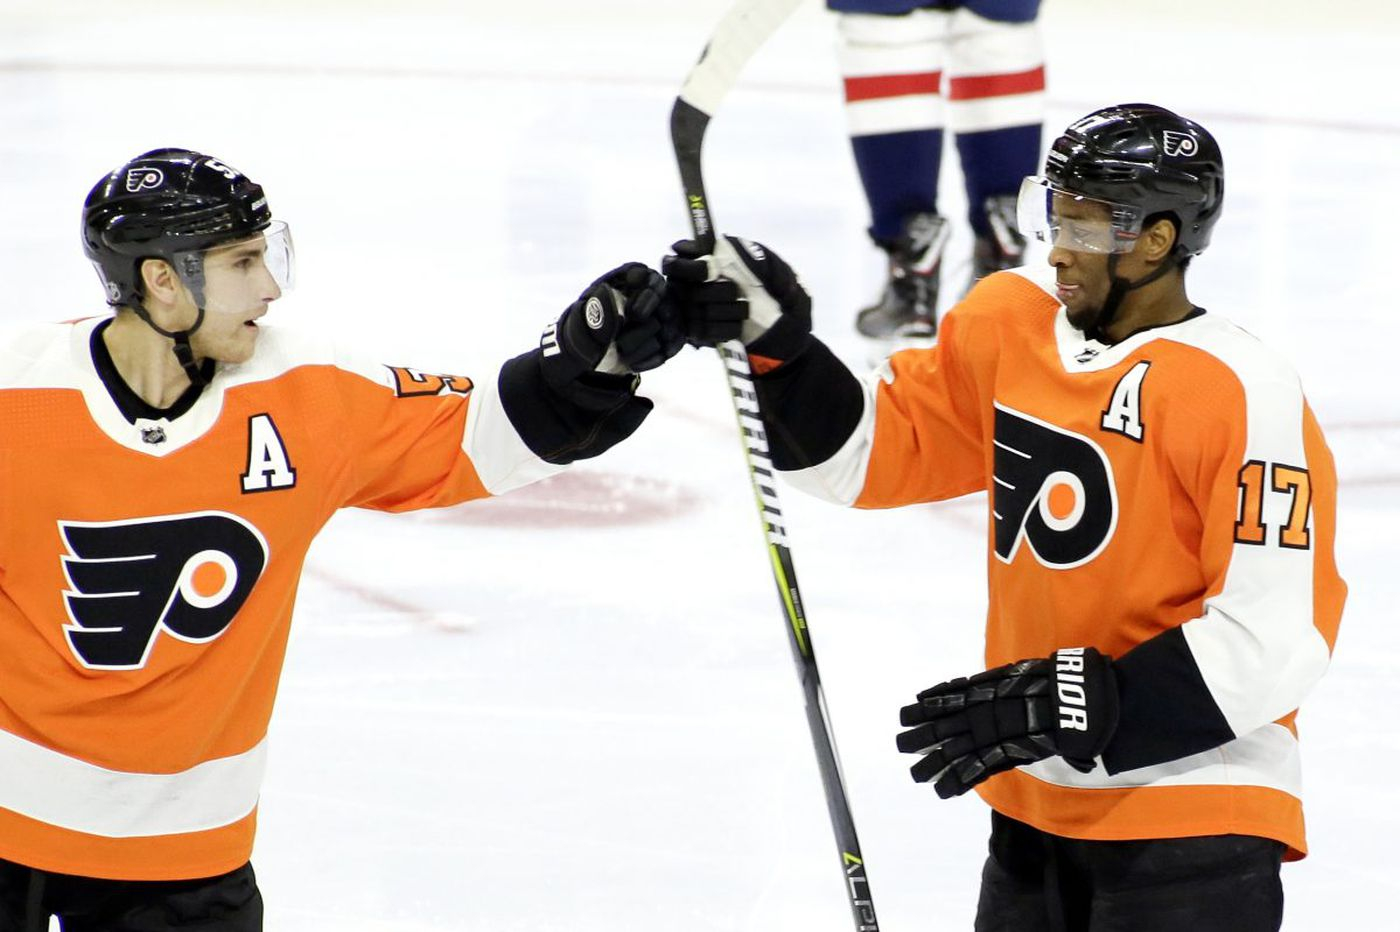 Flyers-Red Wings preview: Detroit coach uses Nick Foles to bolster struggling squad